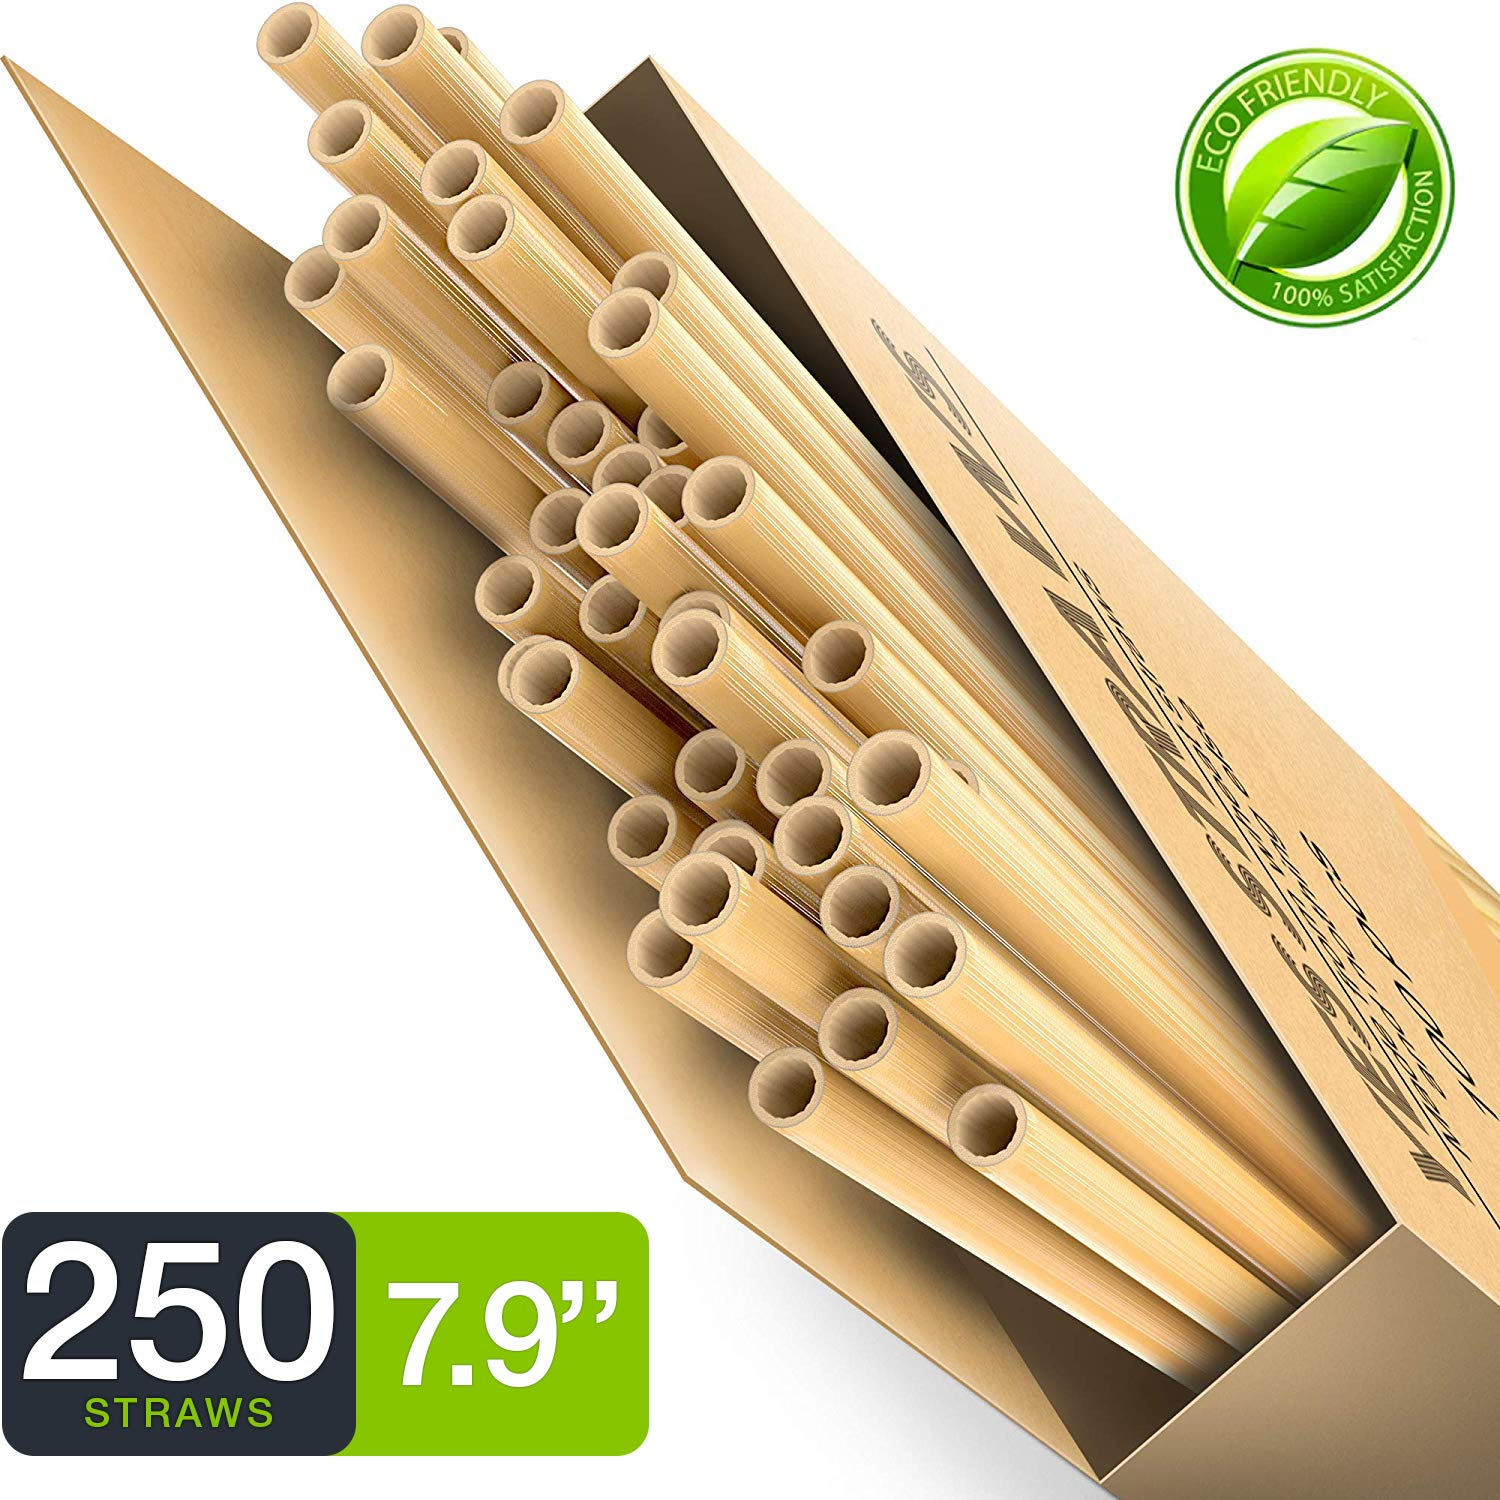 100% Biodegradable & Compostable Eco Friendly Long Wheat Straws - Pack of 250 - Natural and Disposable Drinking Straws - Better Alternative to Plastic, Paper, Stainless-Steel, Silicone & Glass Straws by YesStraws